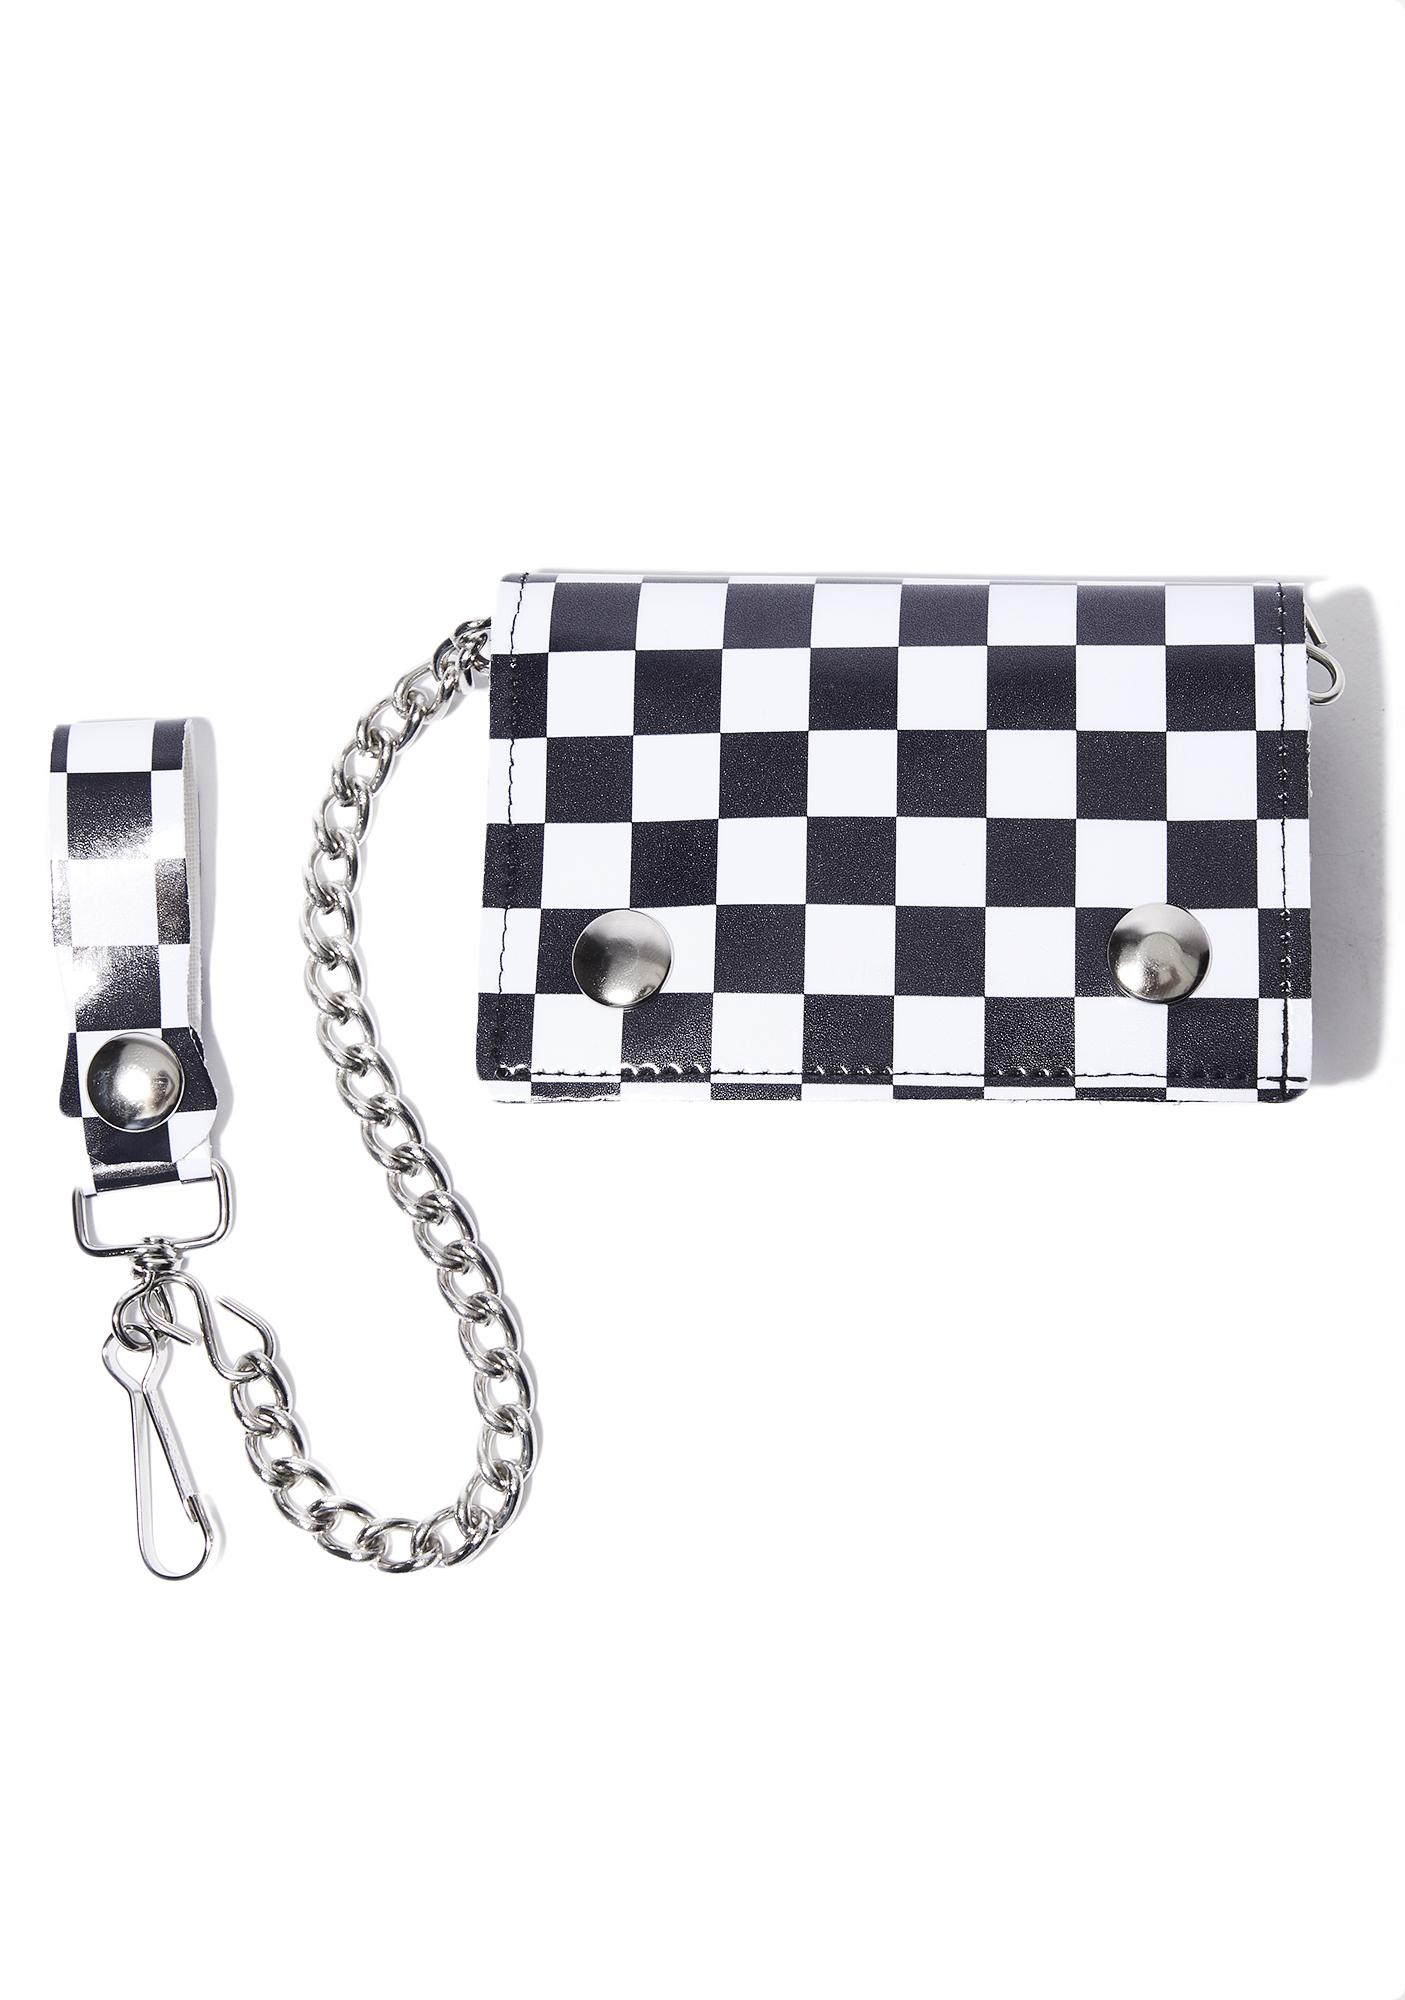 At The Hip Chain Wallet